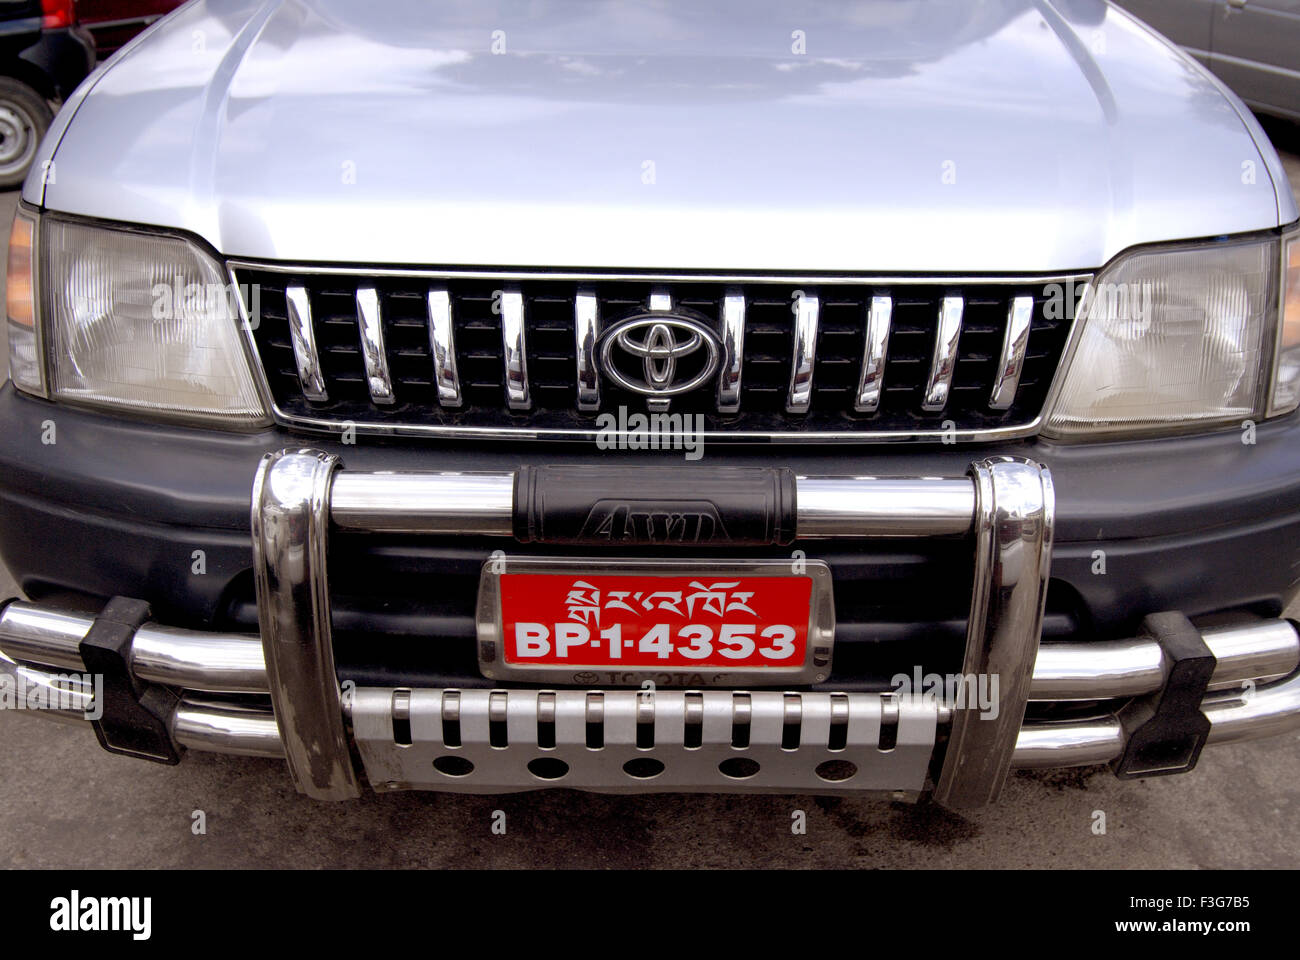 Color car number - Toyota Car Front View With Bhutani Number Plate Red Color At Thimpu Royal Govt Of Bhutan